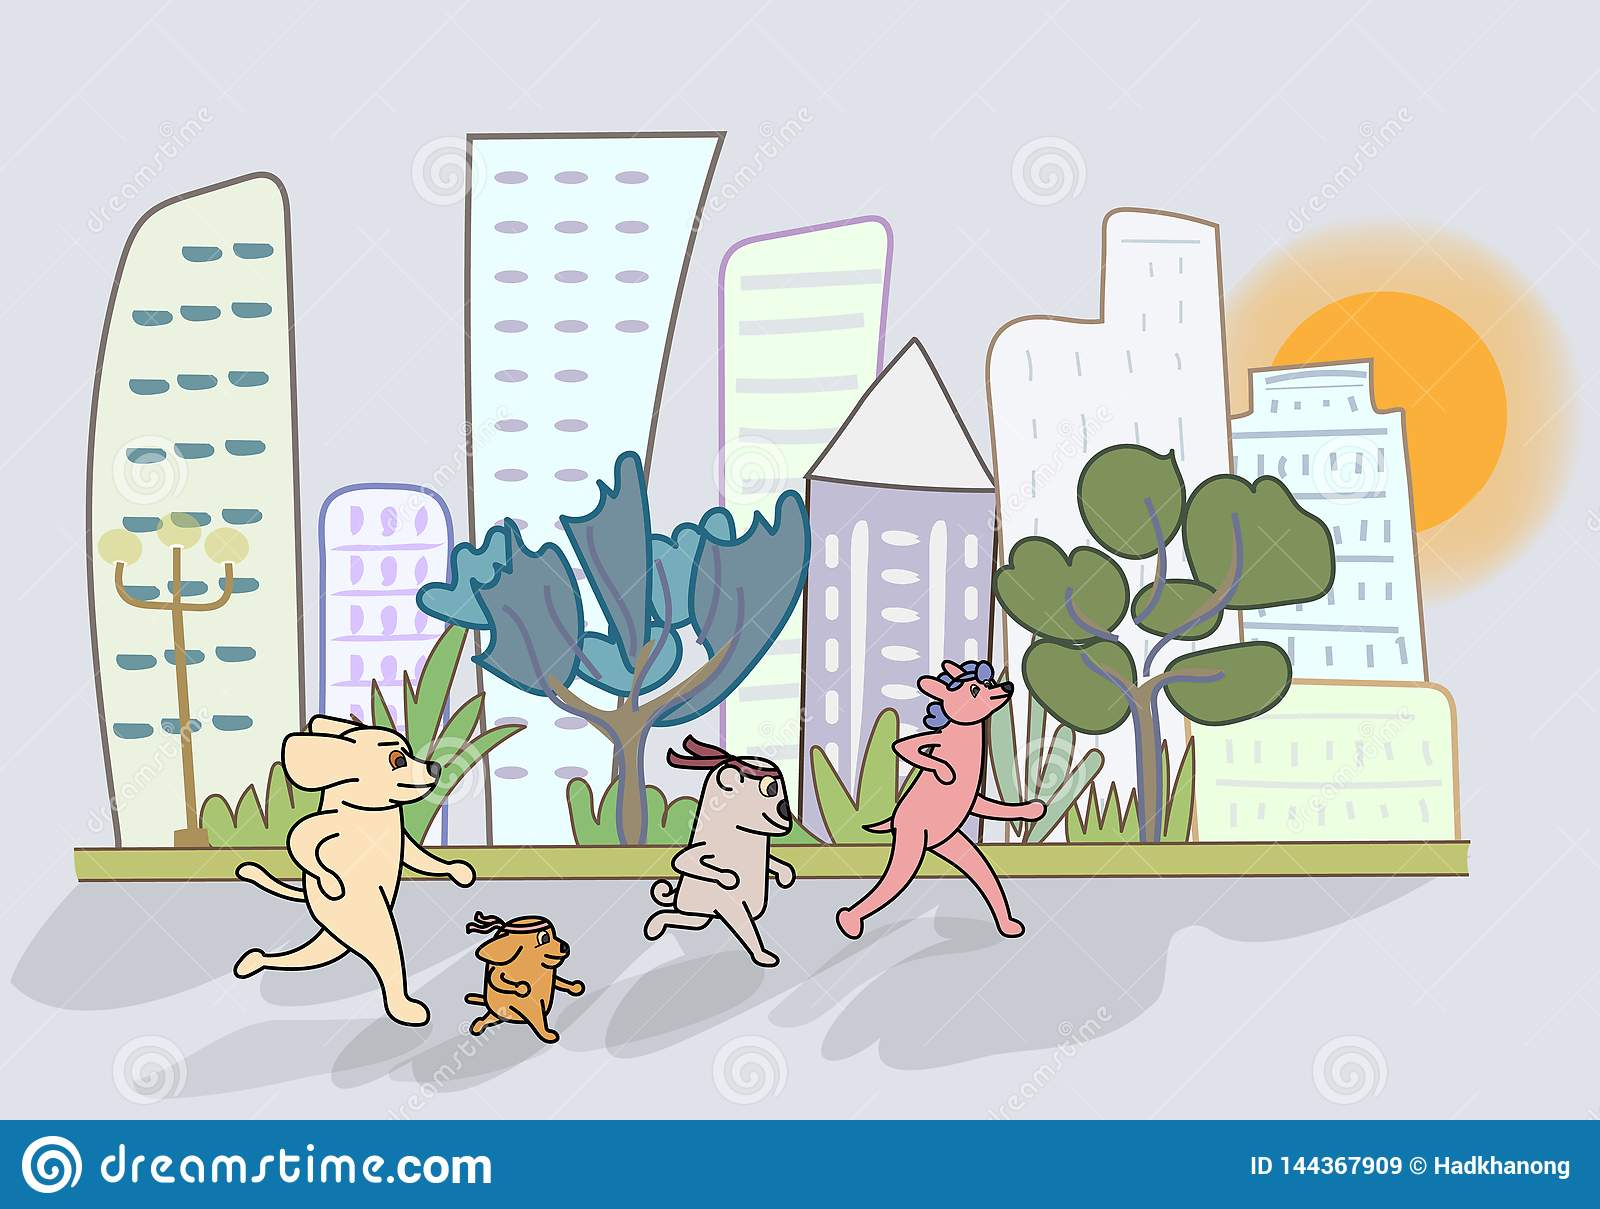 The cartoon dog runs in the garden with a view of the high building